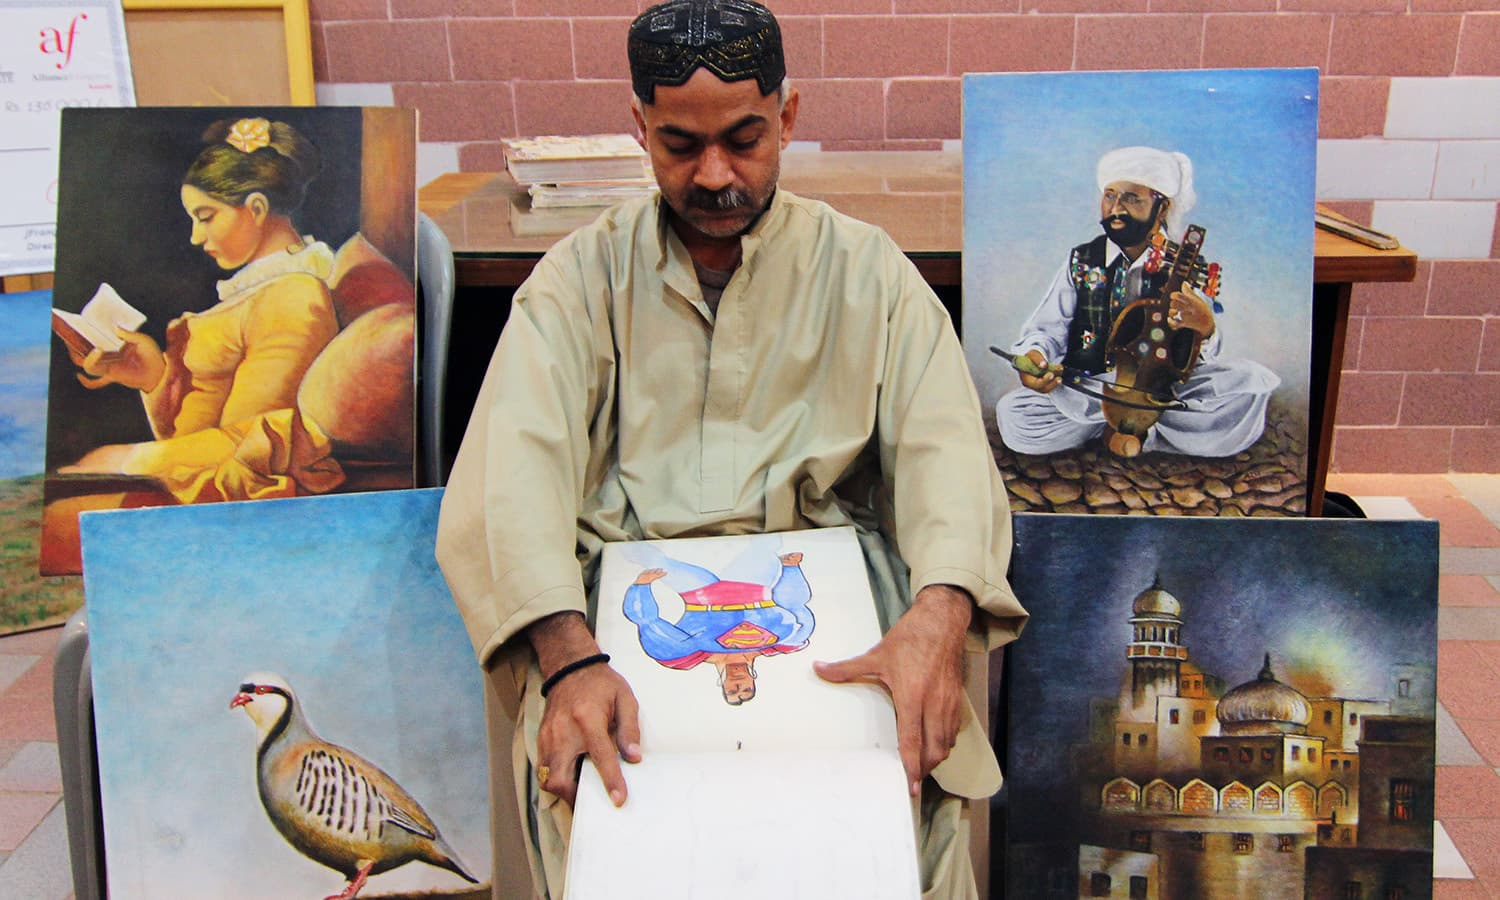 Learning art was a first-time experience for Abdul Aziz Bugti, whose village Dera Bugti, had no proper schools, let alone art schools. In this photograph he sits surrounded by paintings he has made in the past year.